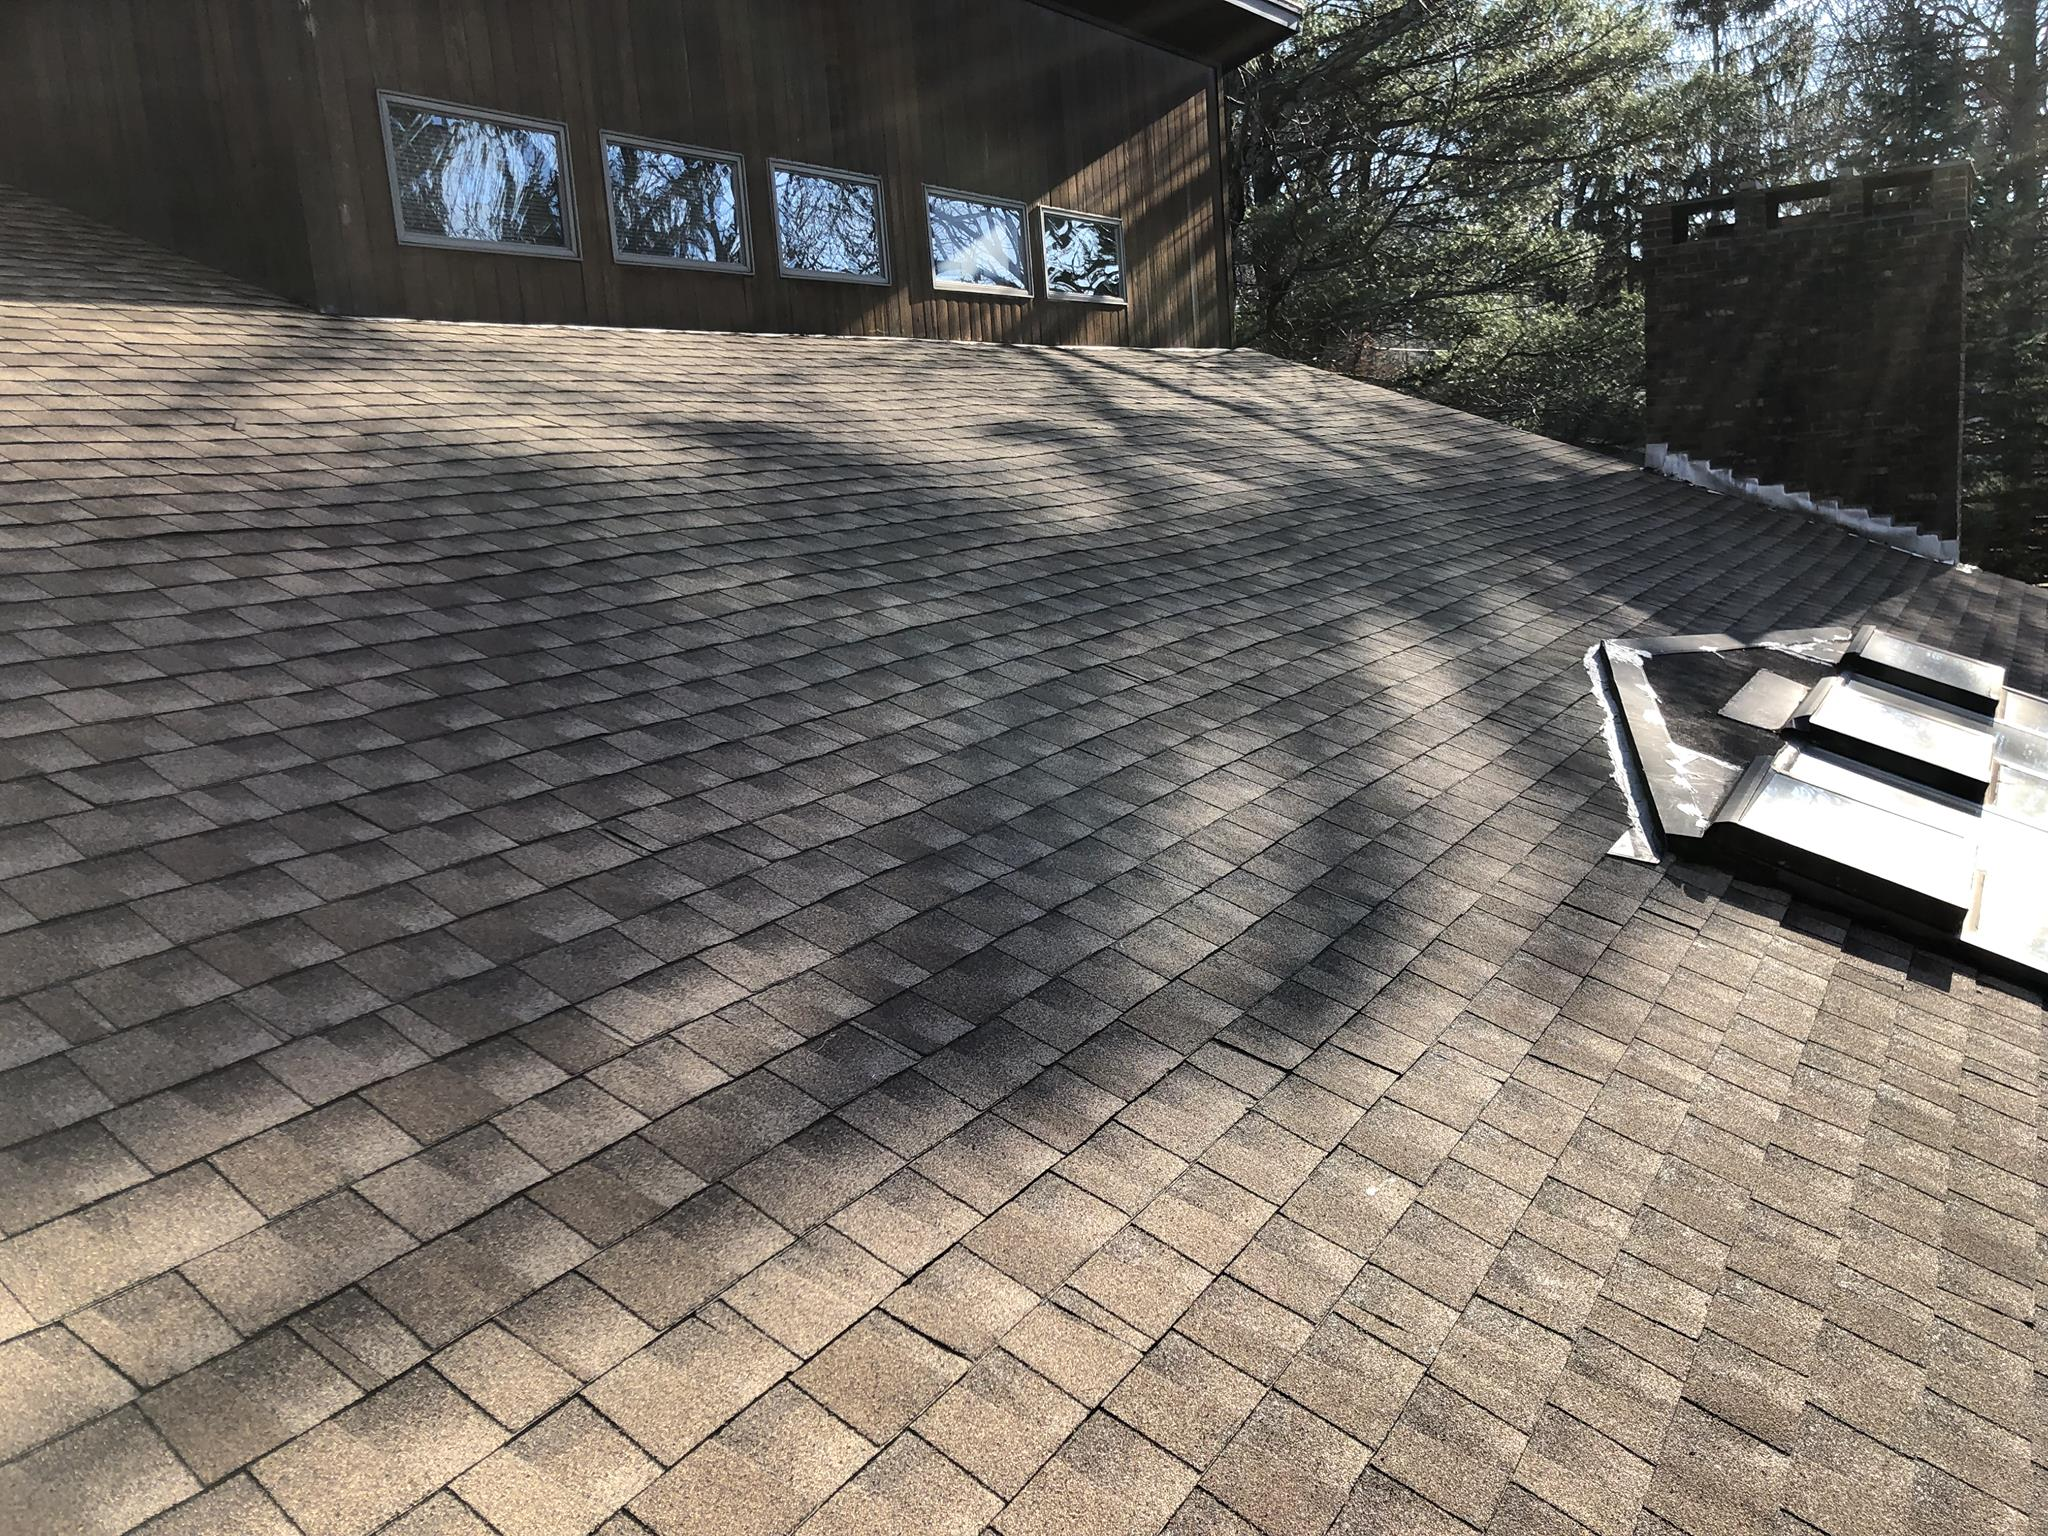 Satisfied Roofing. West Milford, NJ